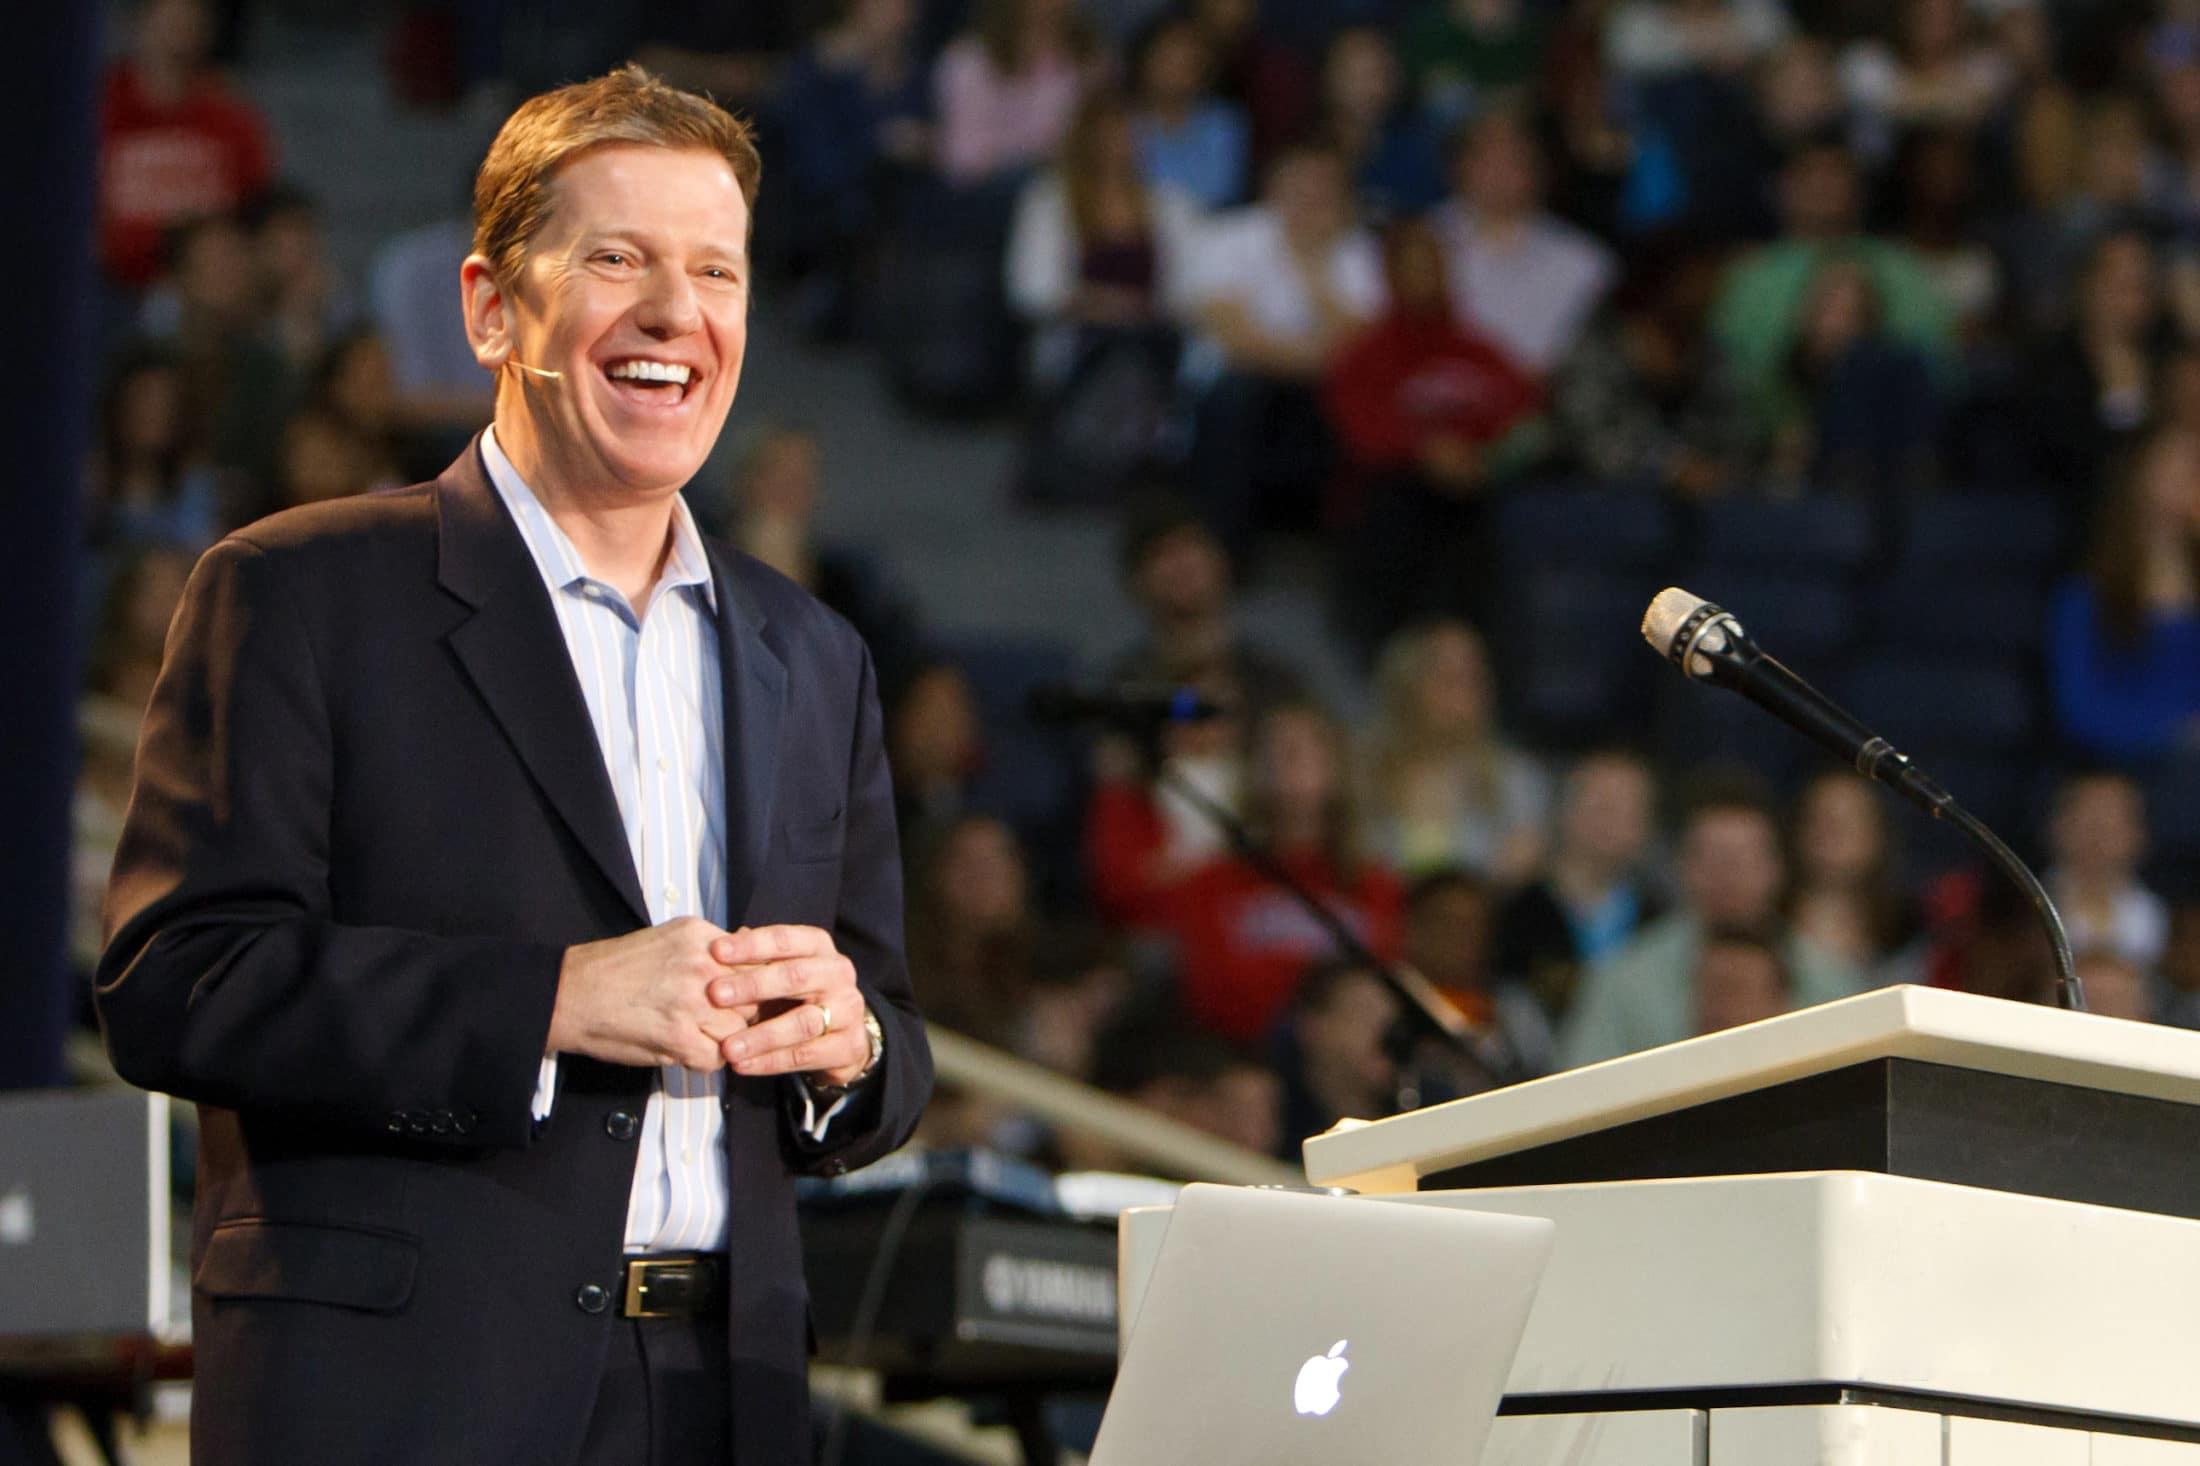 Michael Hyatt Speaking